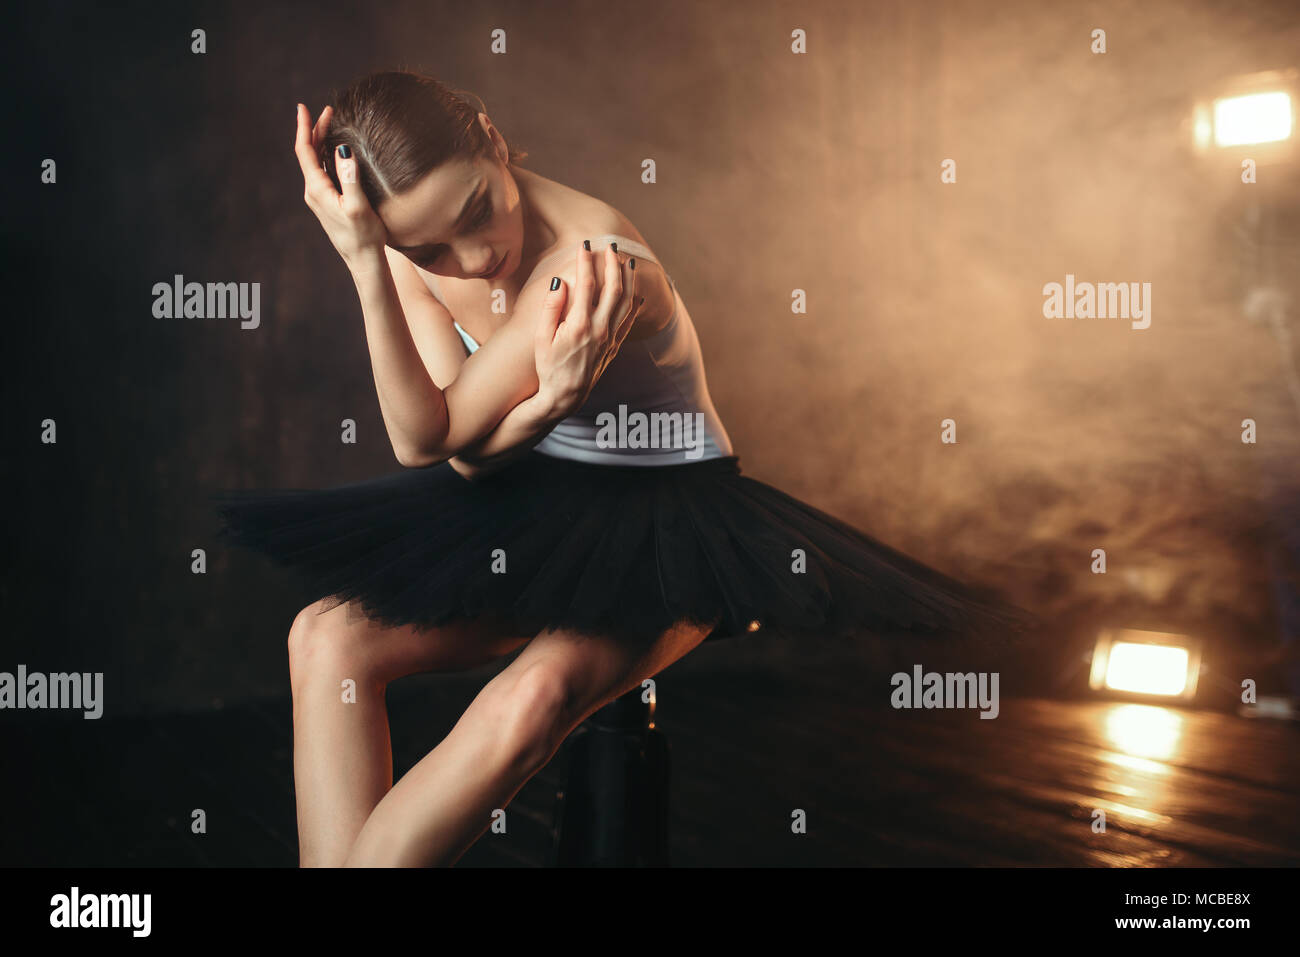 Ballerina sitting on black banquette in theatre - Stock Image